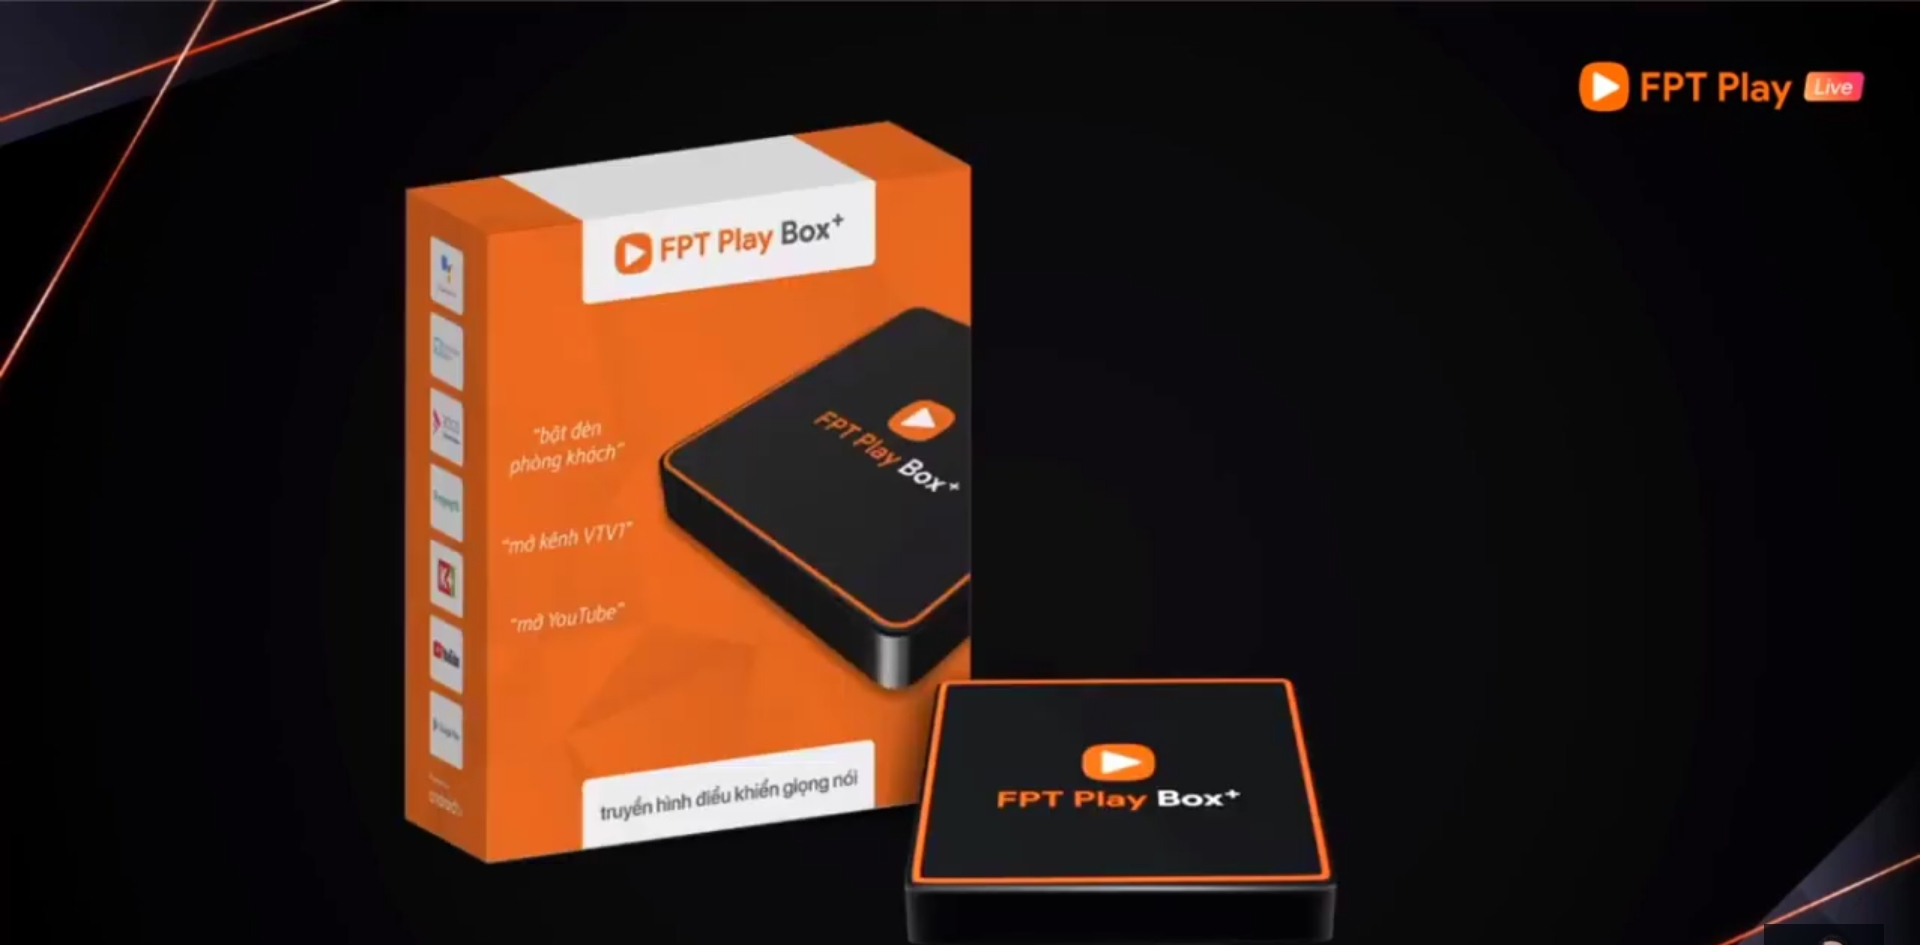 thiết kế fpt play box 2020